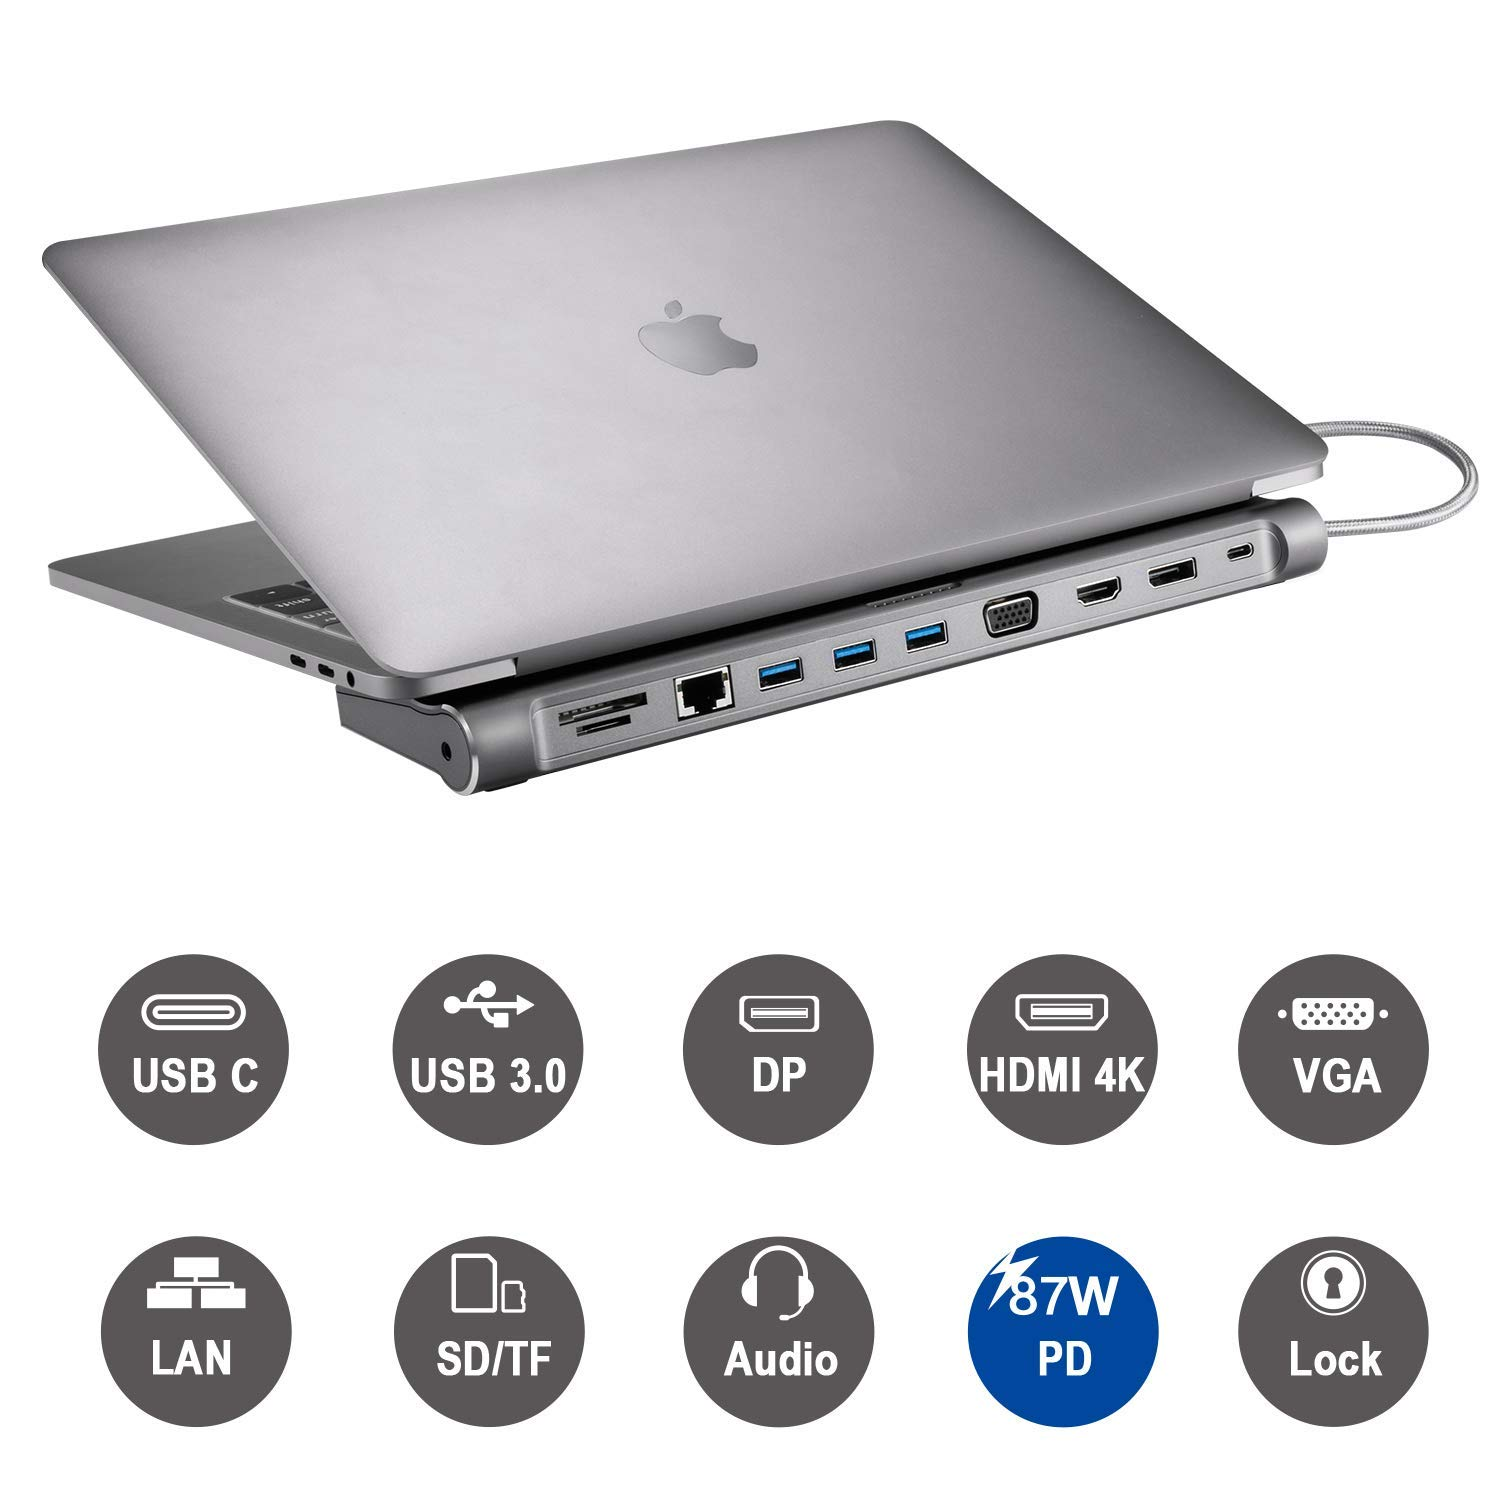 USB C Dock,12-in-1 USB C Docking Station with Ethernet Port, 4K USB C to HDMI, 3 USB 3.0 Ports, SD/TF Card Reader, USB-C Power Delivery, Display Port and VGA Port for MacBook Pro 2016/2017/2018 by Tobenone (Image #2)